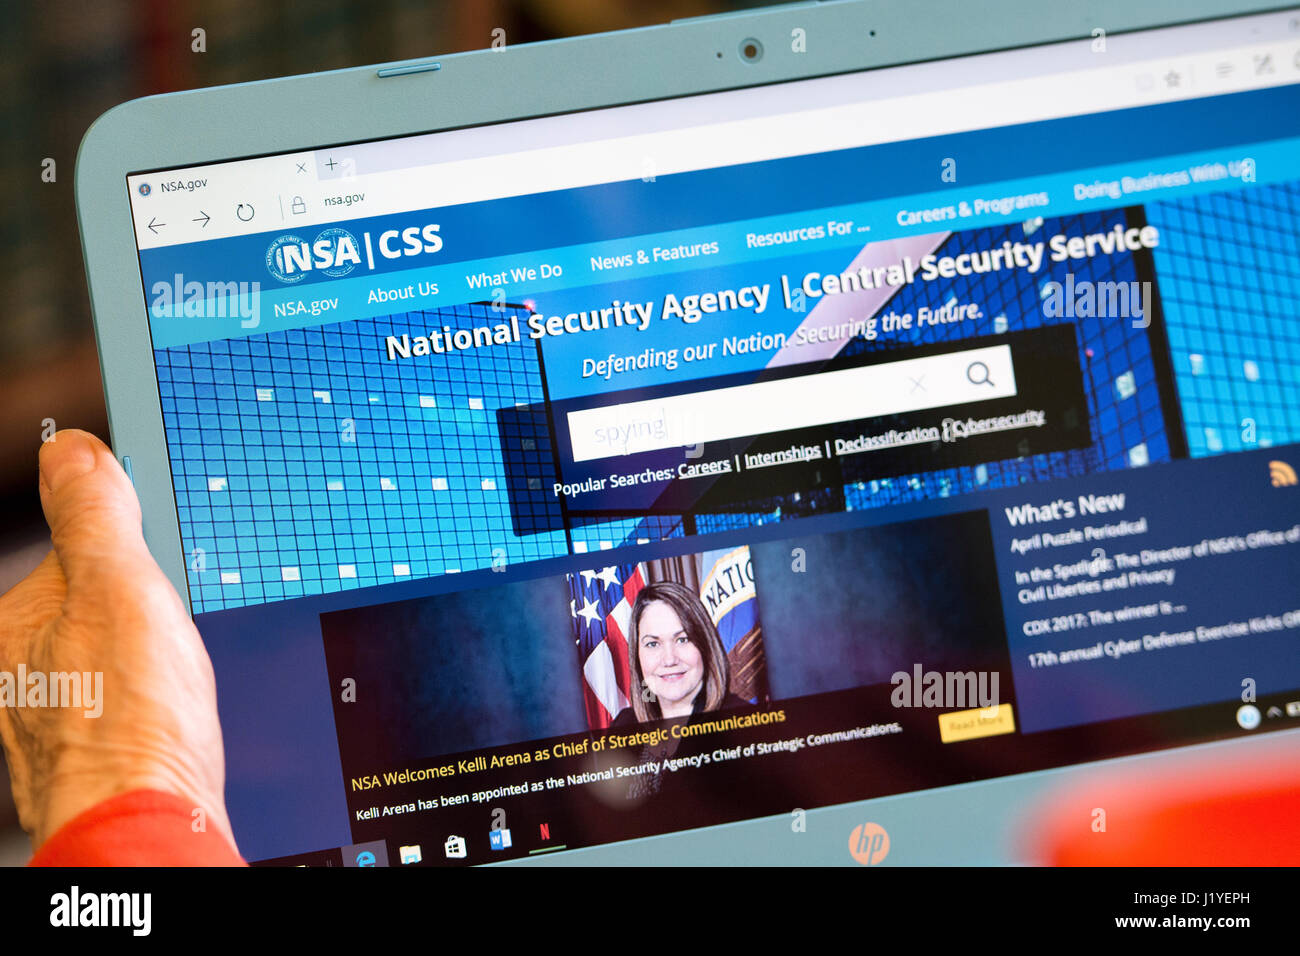 NSA National Security Agency, Central Security Service website screen - Stock Image